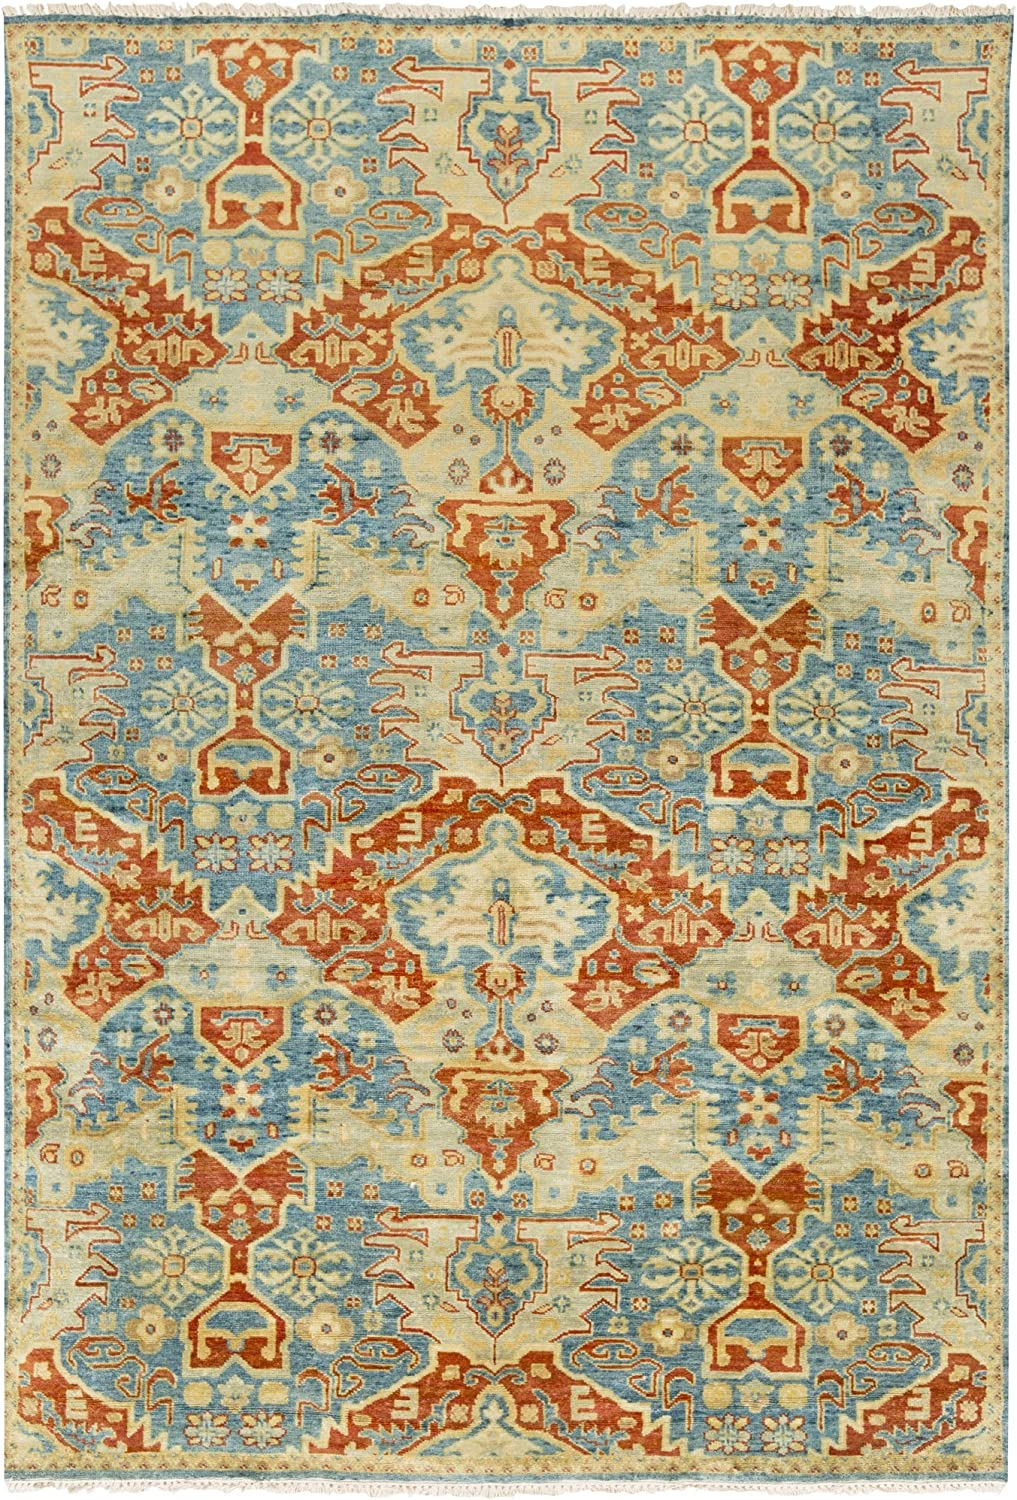 Amazon Com Surya Hand Knotted Casual Area Rug 8 Feet Teal Rust Gold Olive Lime Furniture Decor